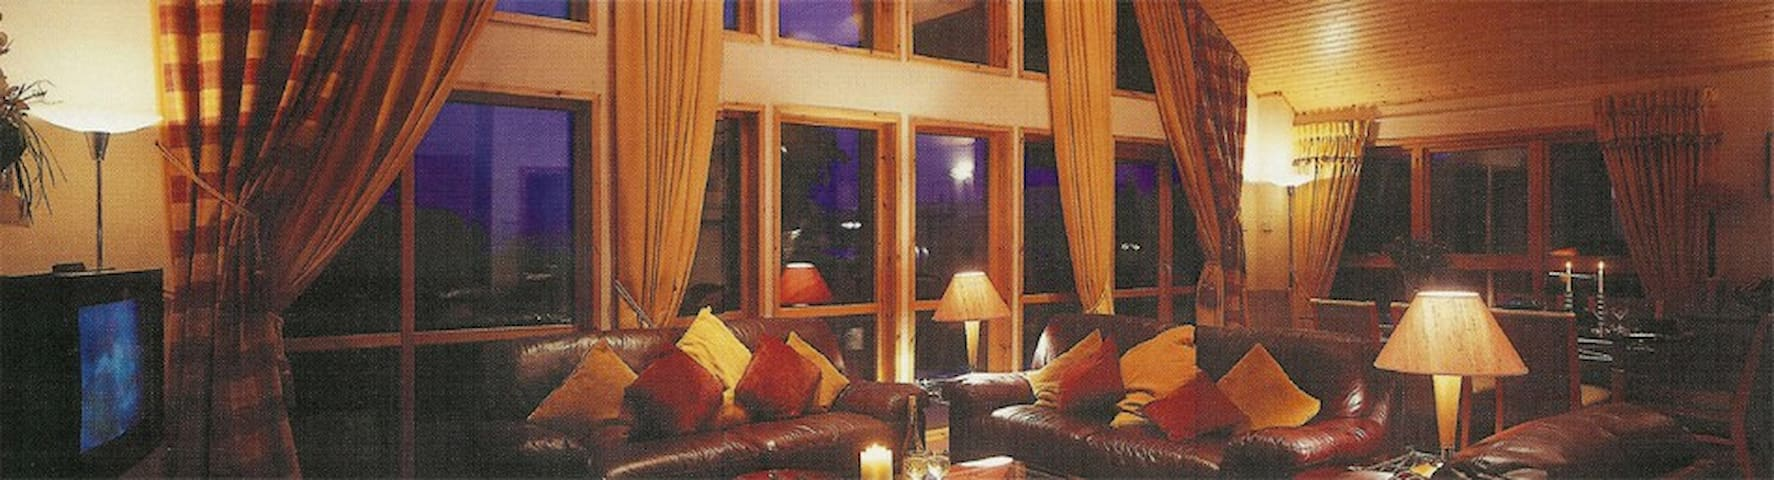 Lux 5-Star Lodge for 8 on Loch Lomond - Balloch